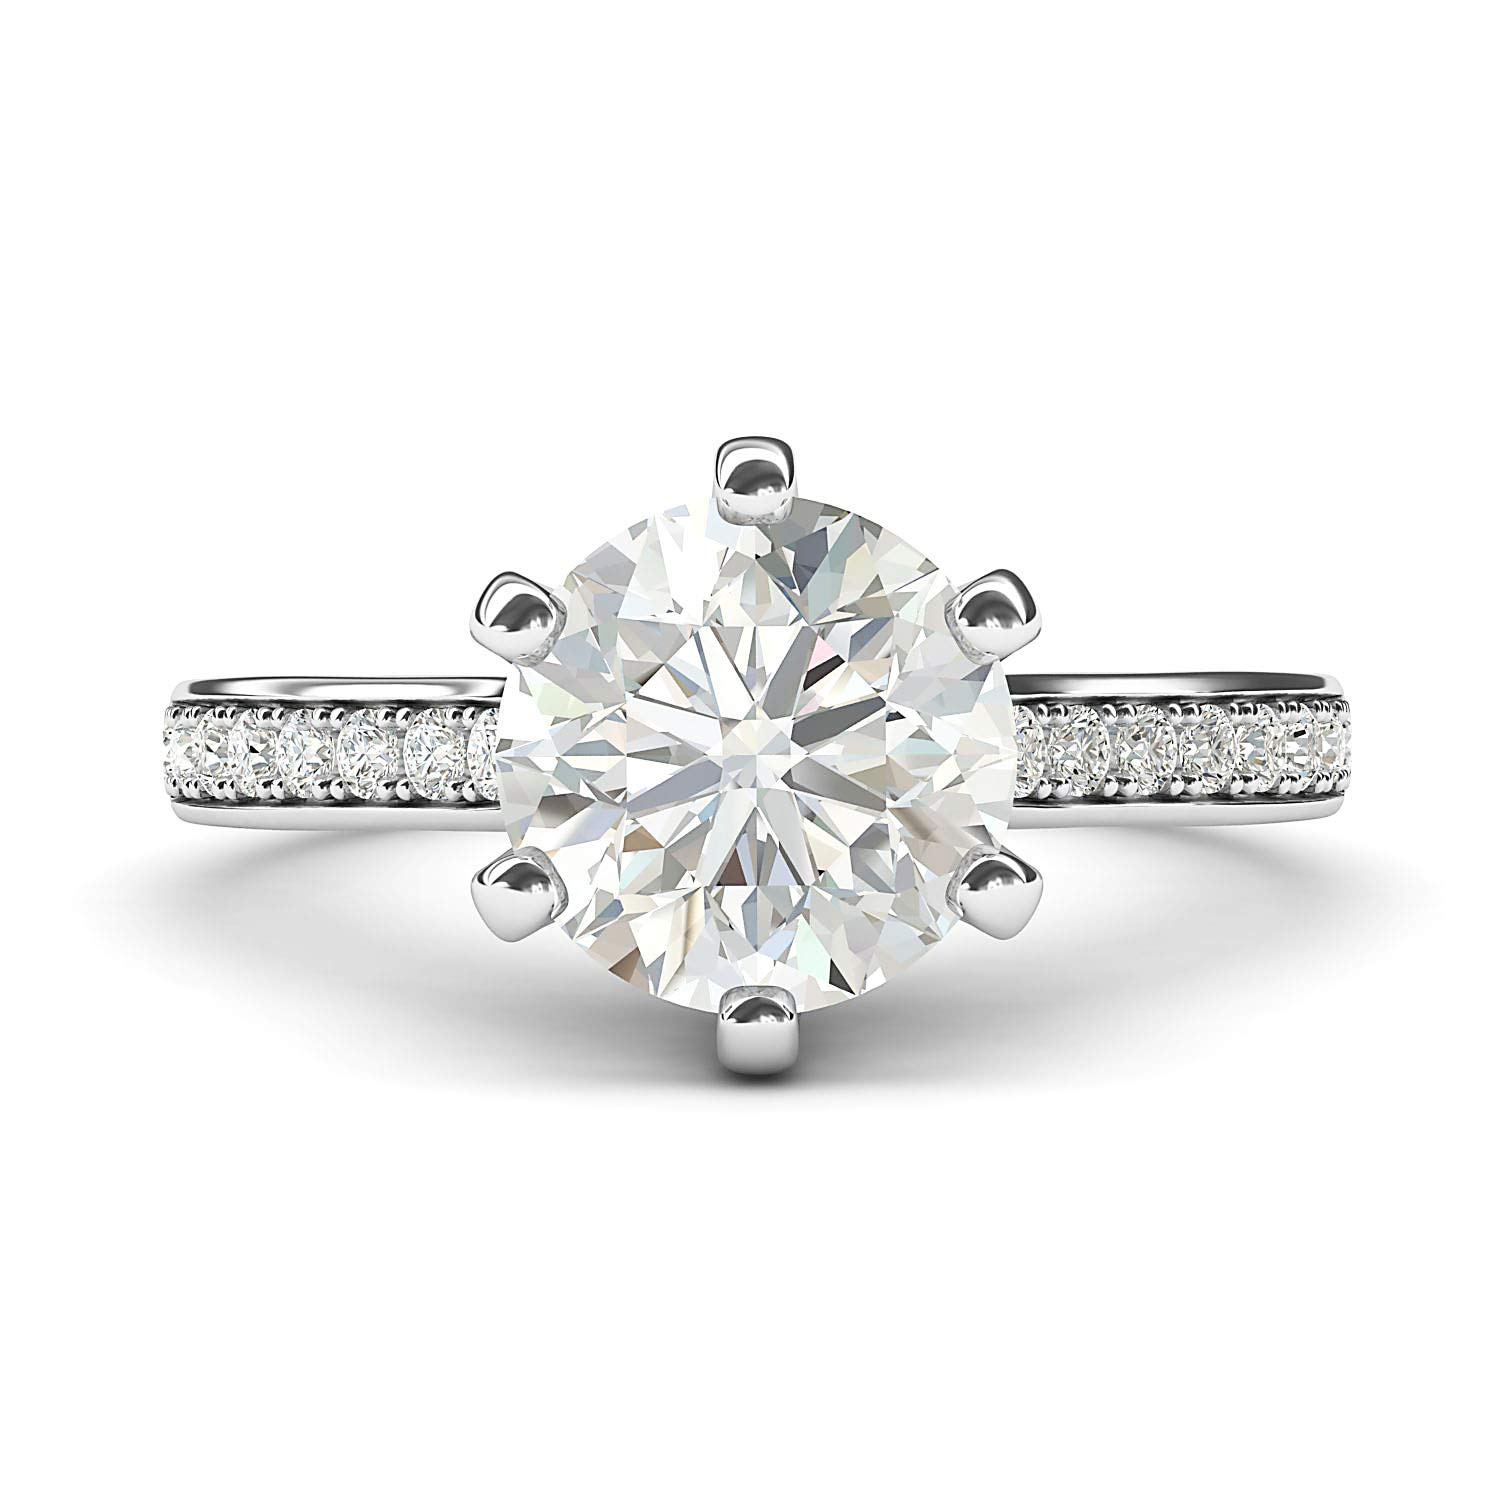 14k White Gold 2 Carats Classic 6-Prong Simulated Diamond Engagement Ring with Side Stones Promise Bridal Ring (7)